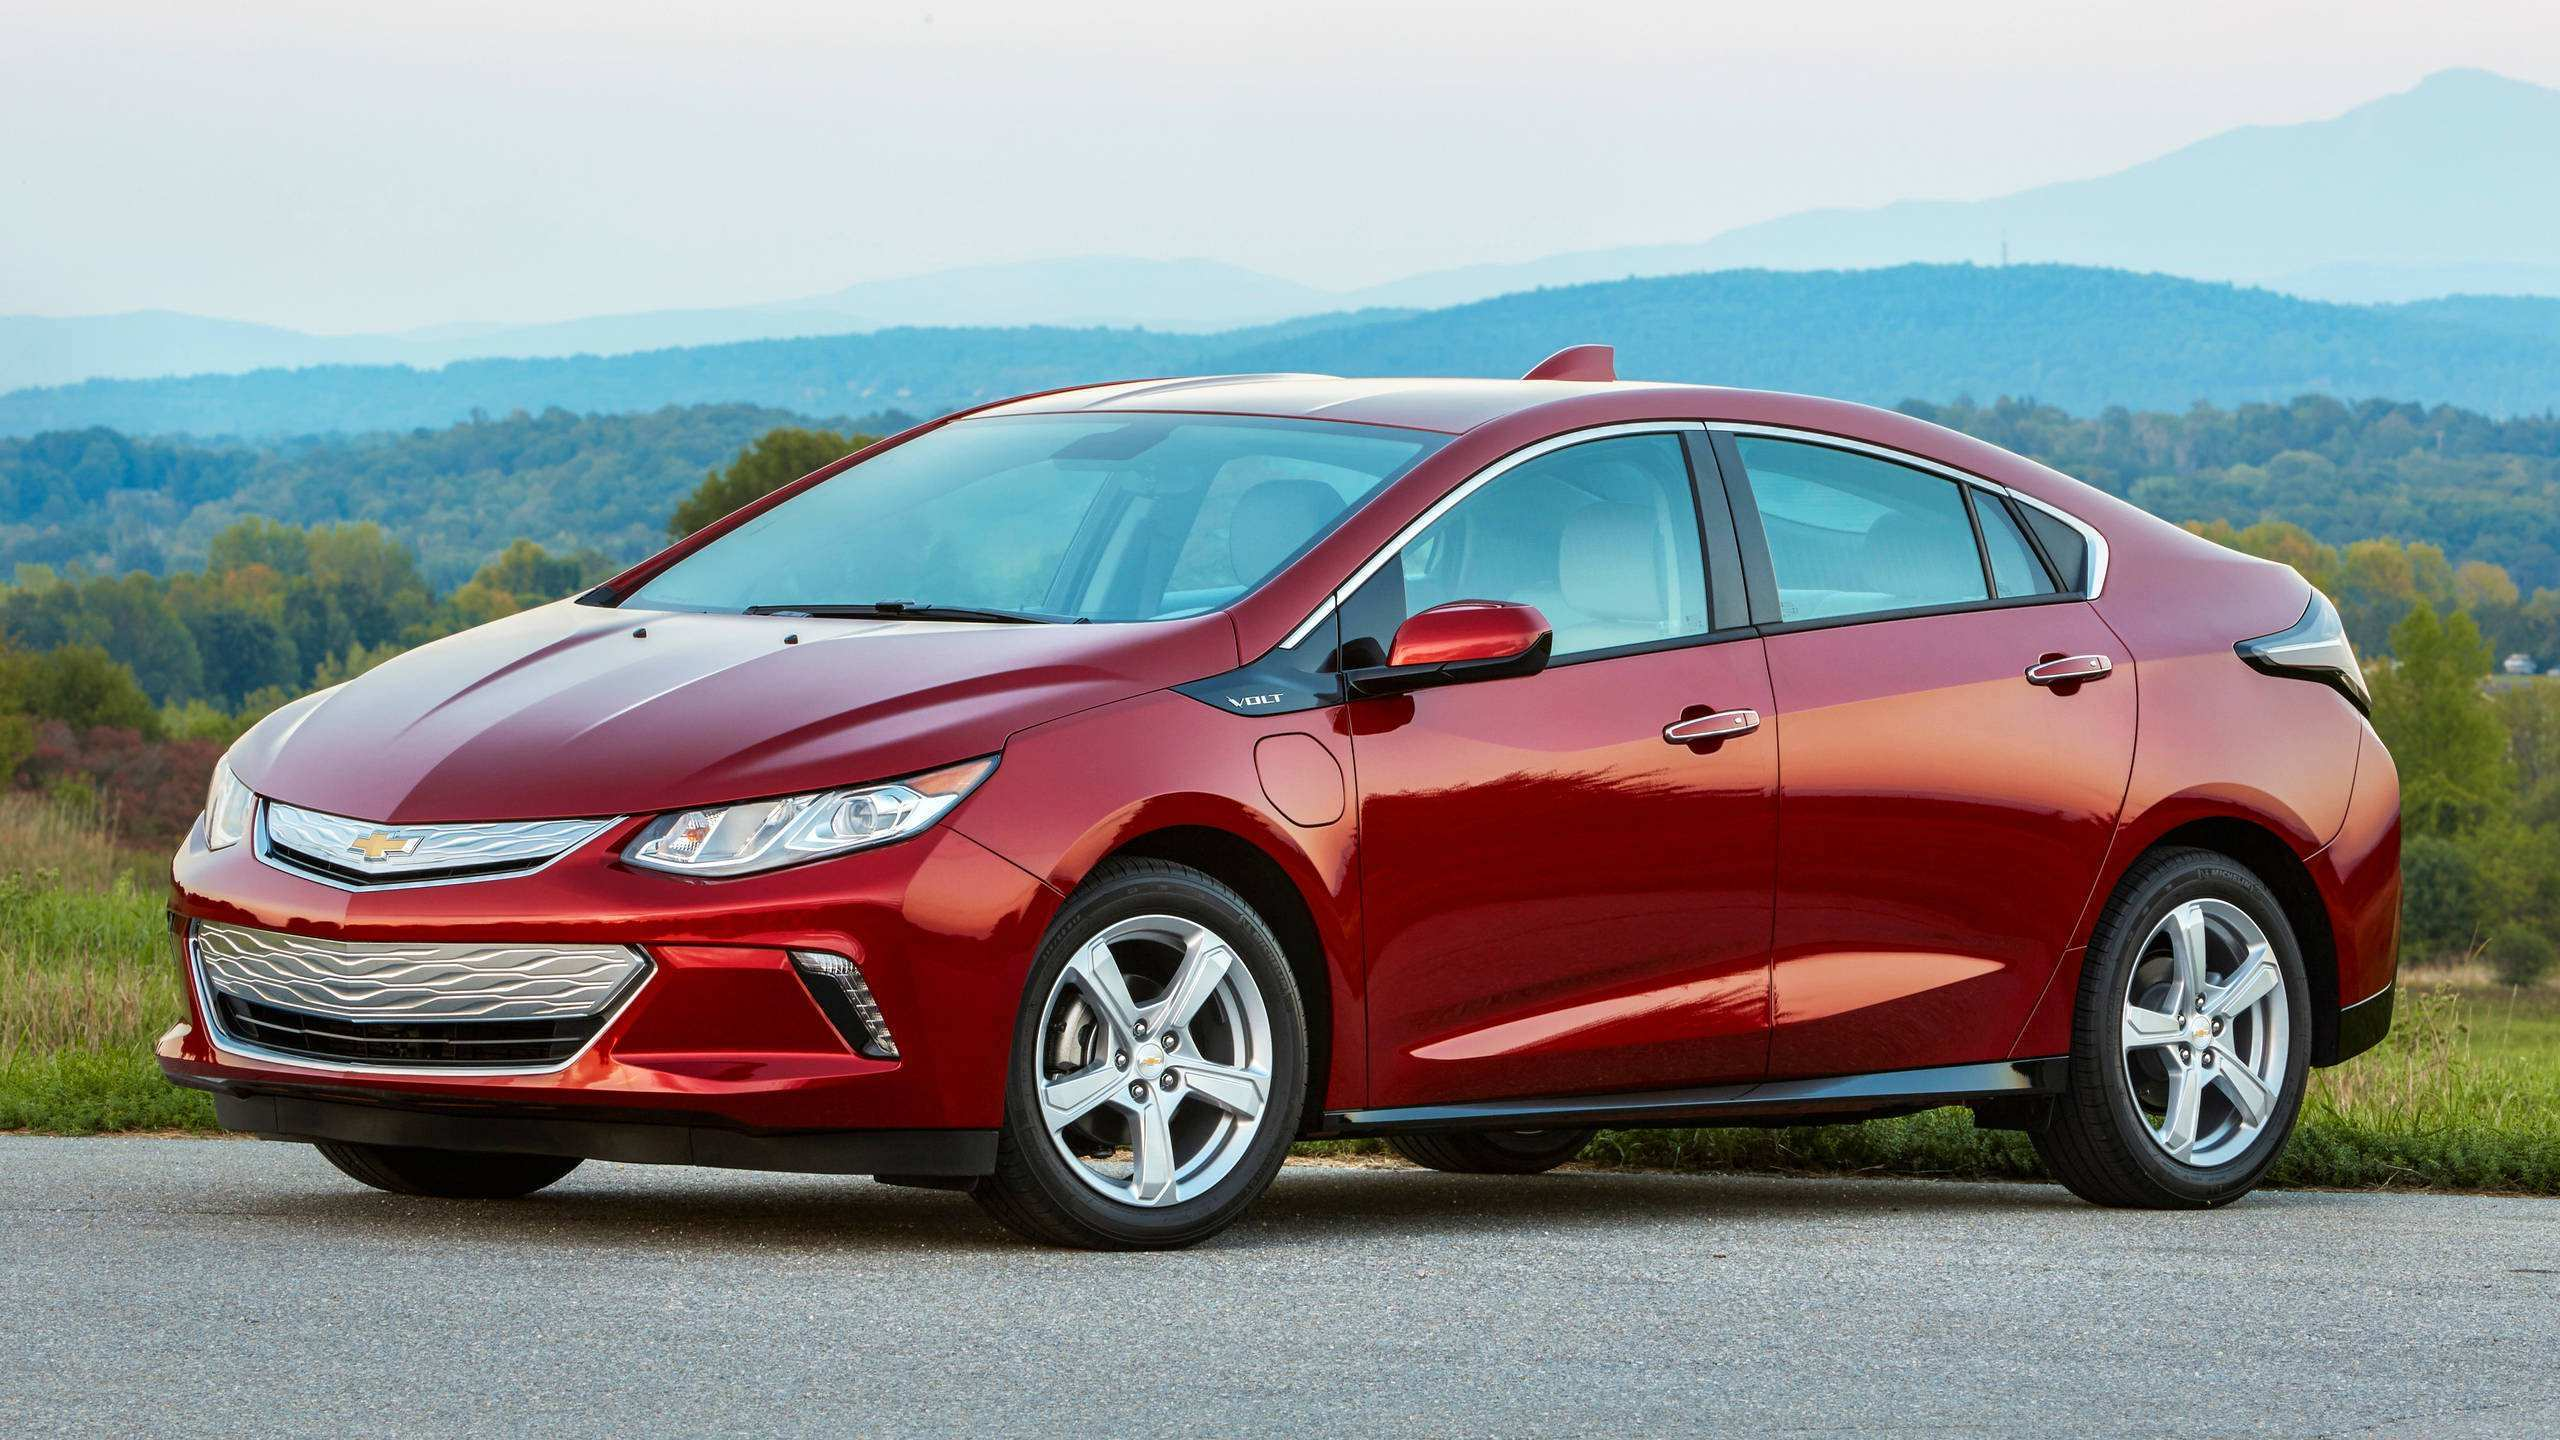 52 All New Chevrolet Volt Sport 2020 Wallpaper